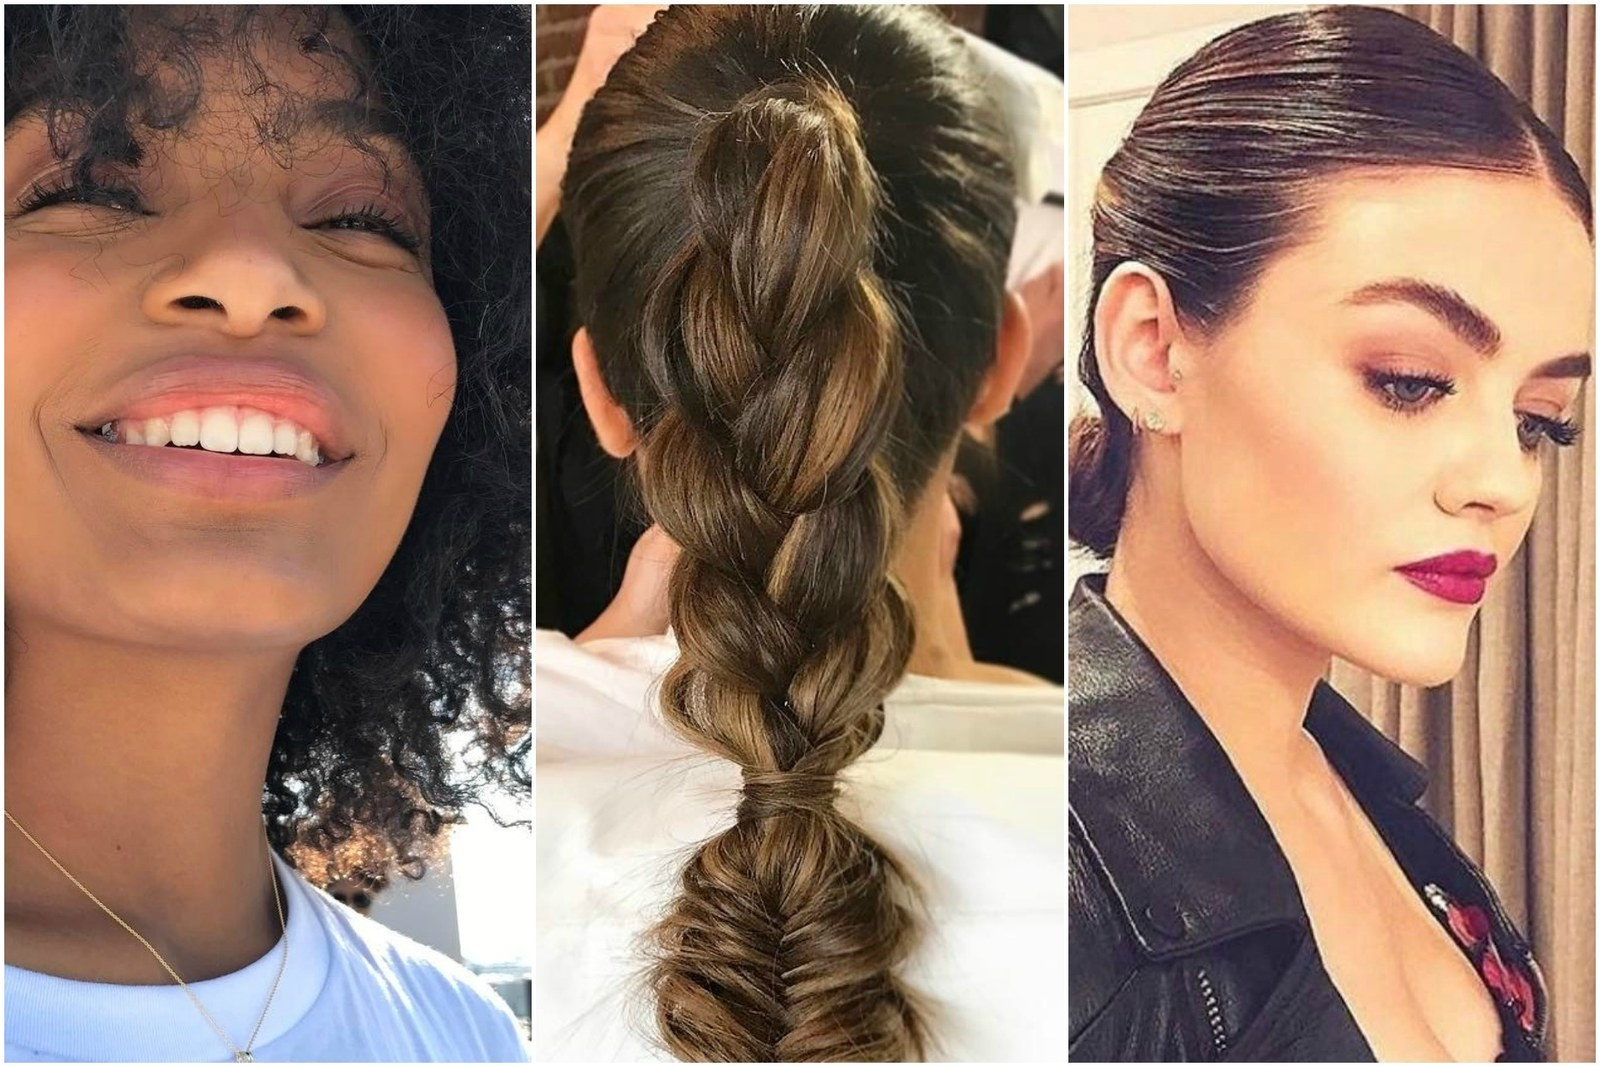 The Best Graduation Hairstyles That Won't Give You Cap Hair – Teen Vogue Regarding Graduation Cap Hairstyles For Short Hair (View 17 of 25)